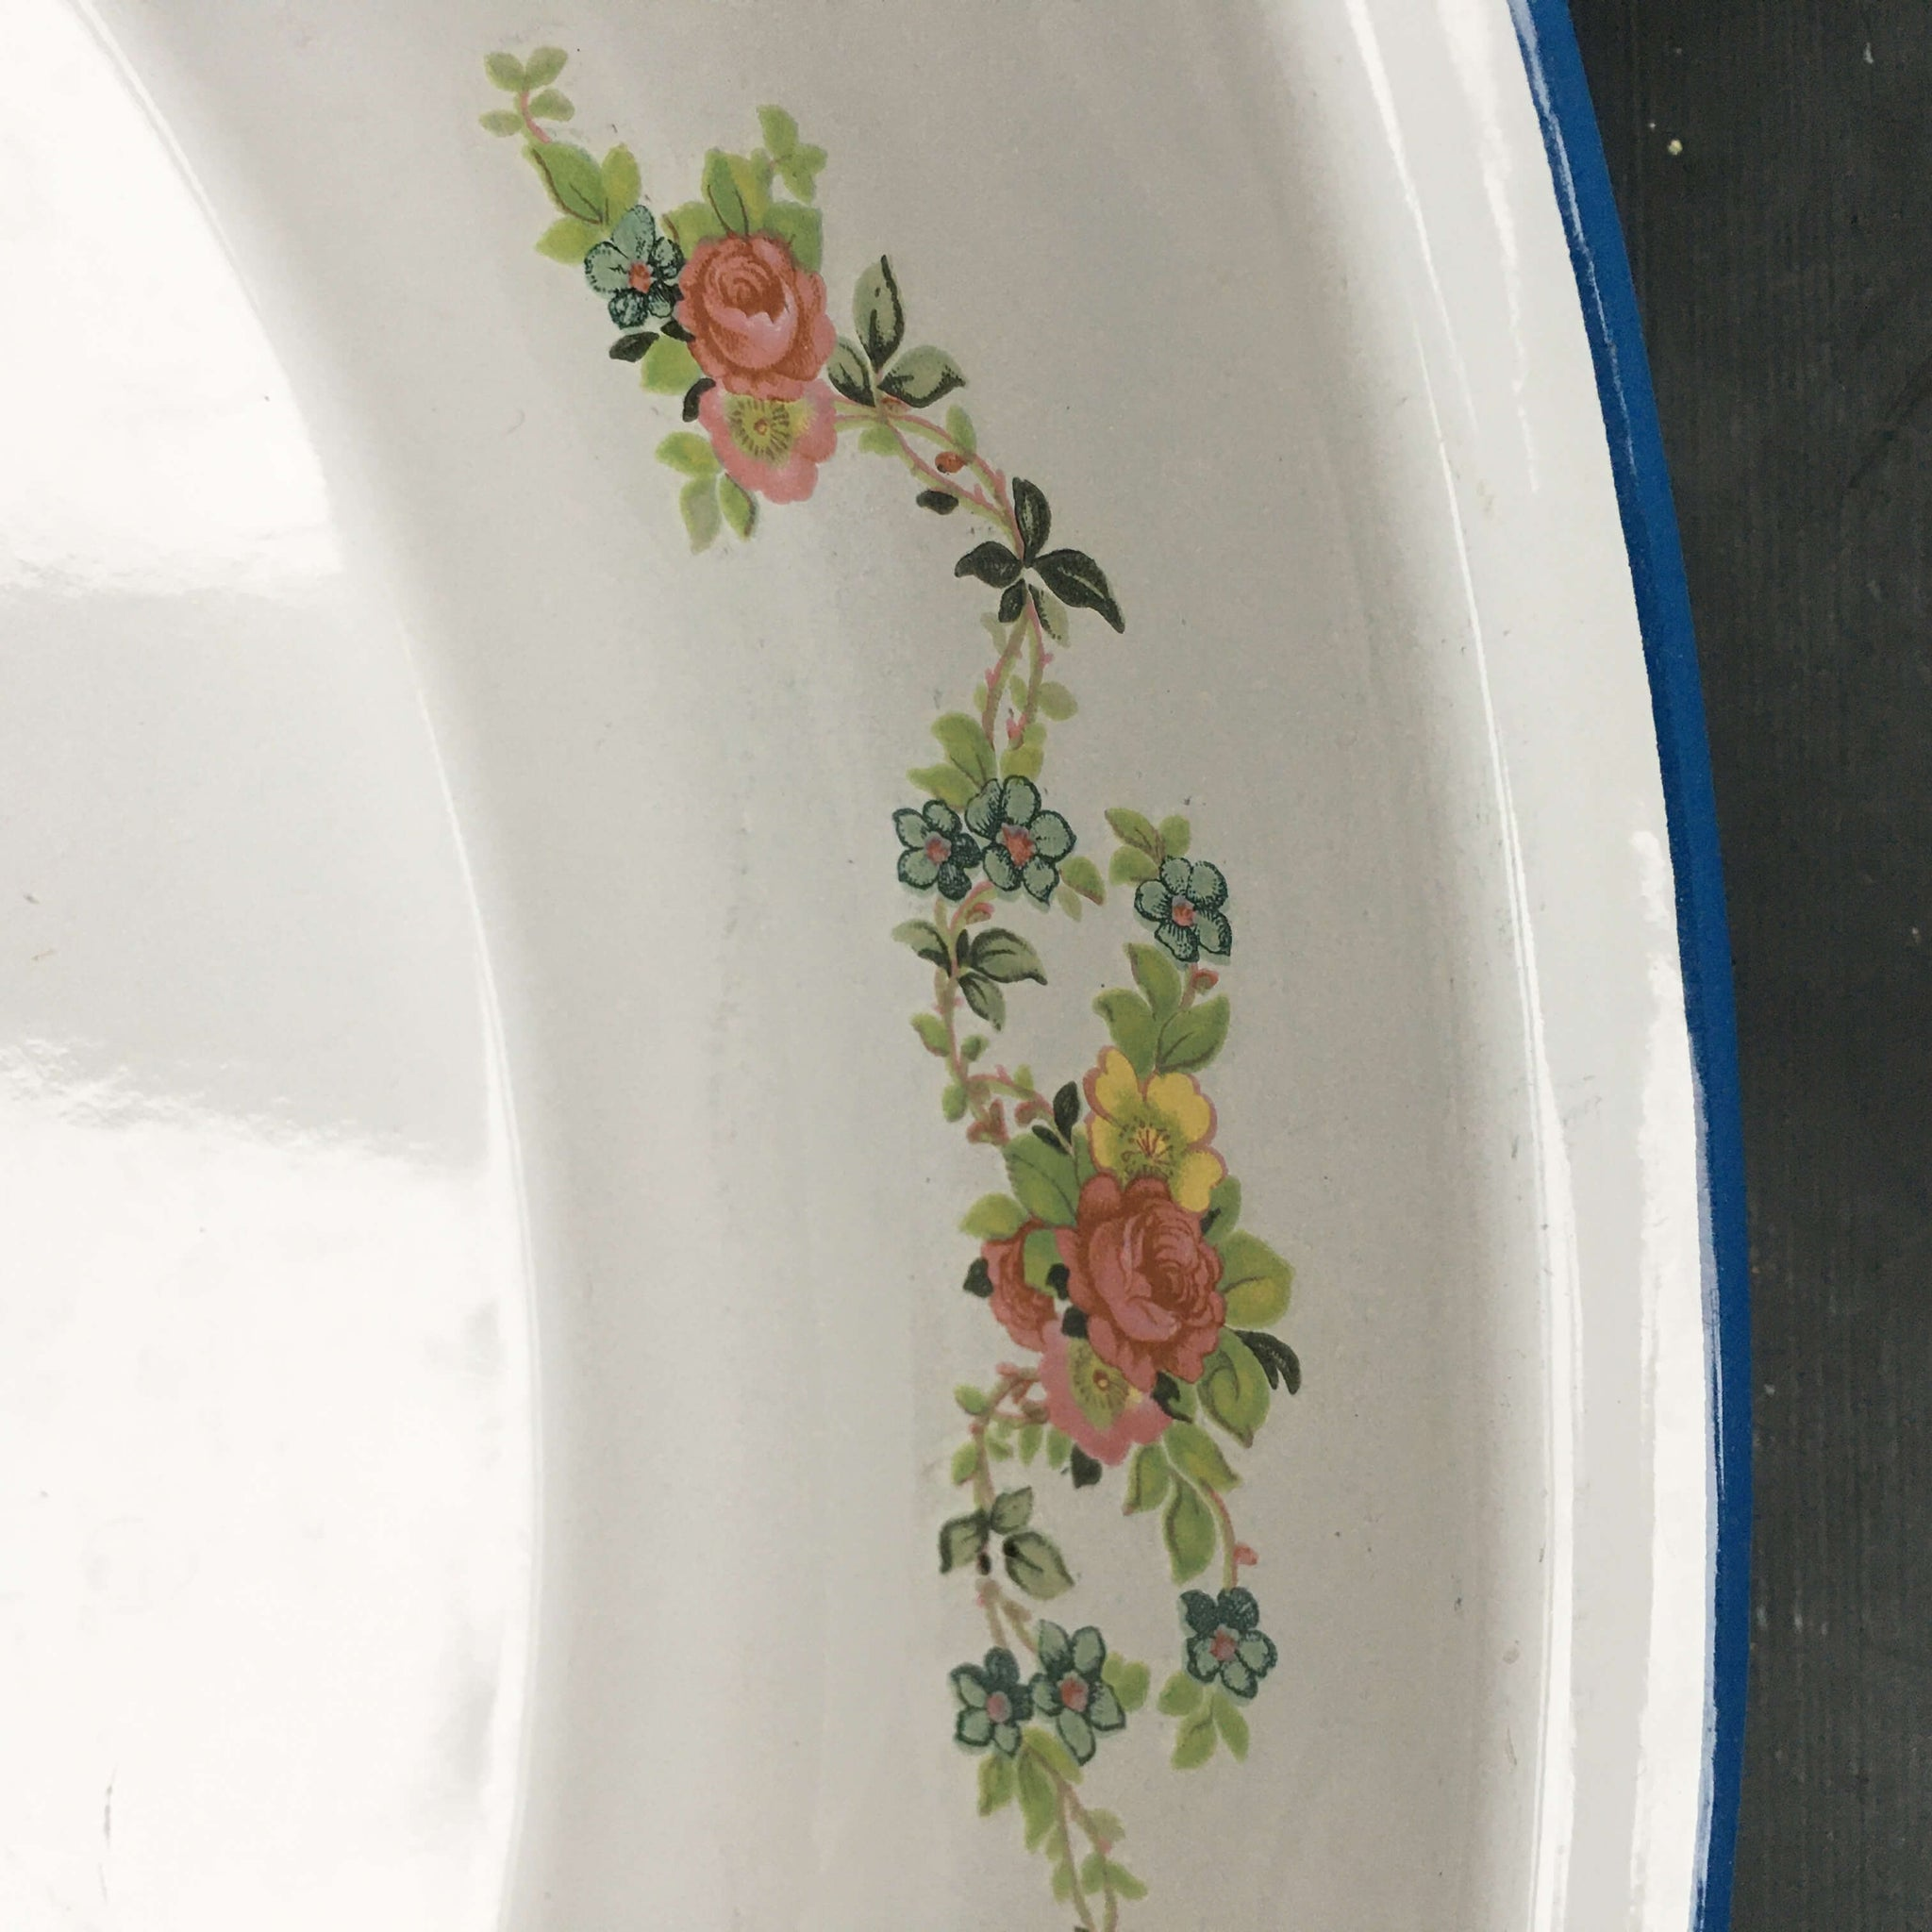 Vintage Cinsa Enamelware Oval Serving Bowl - Floral Pattern - Made in Mexico  circa 1970s